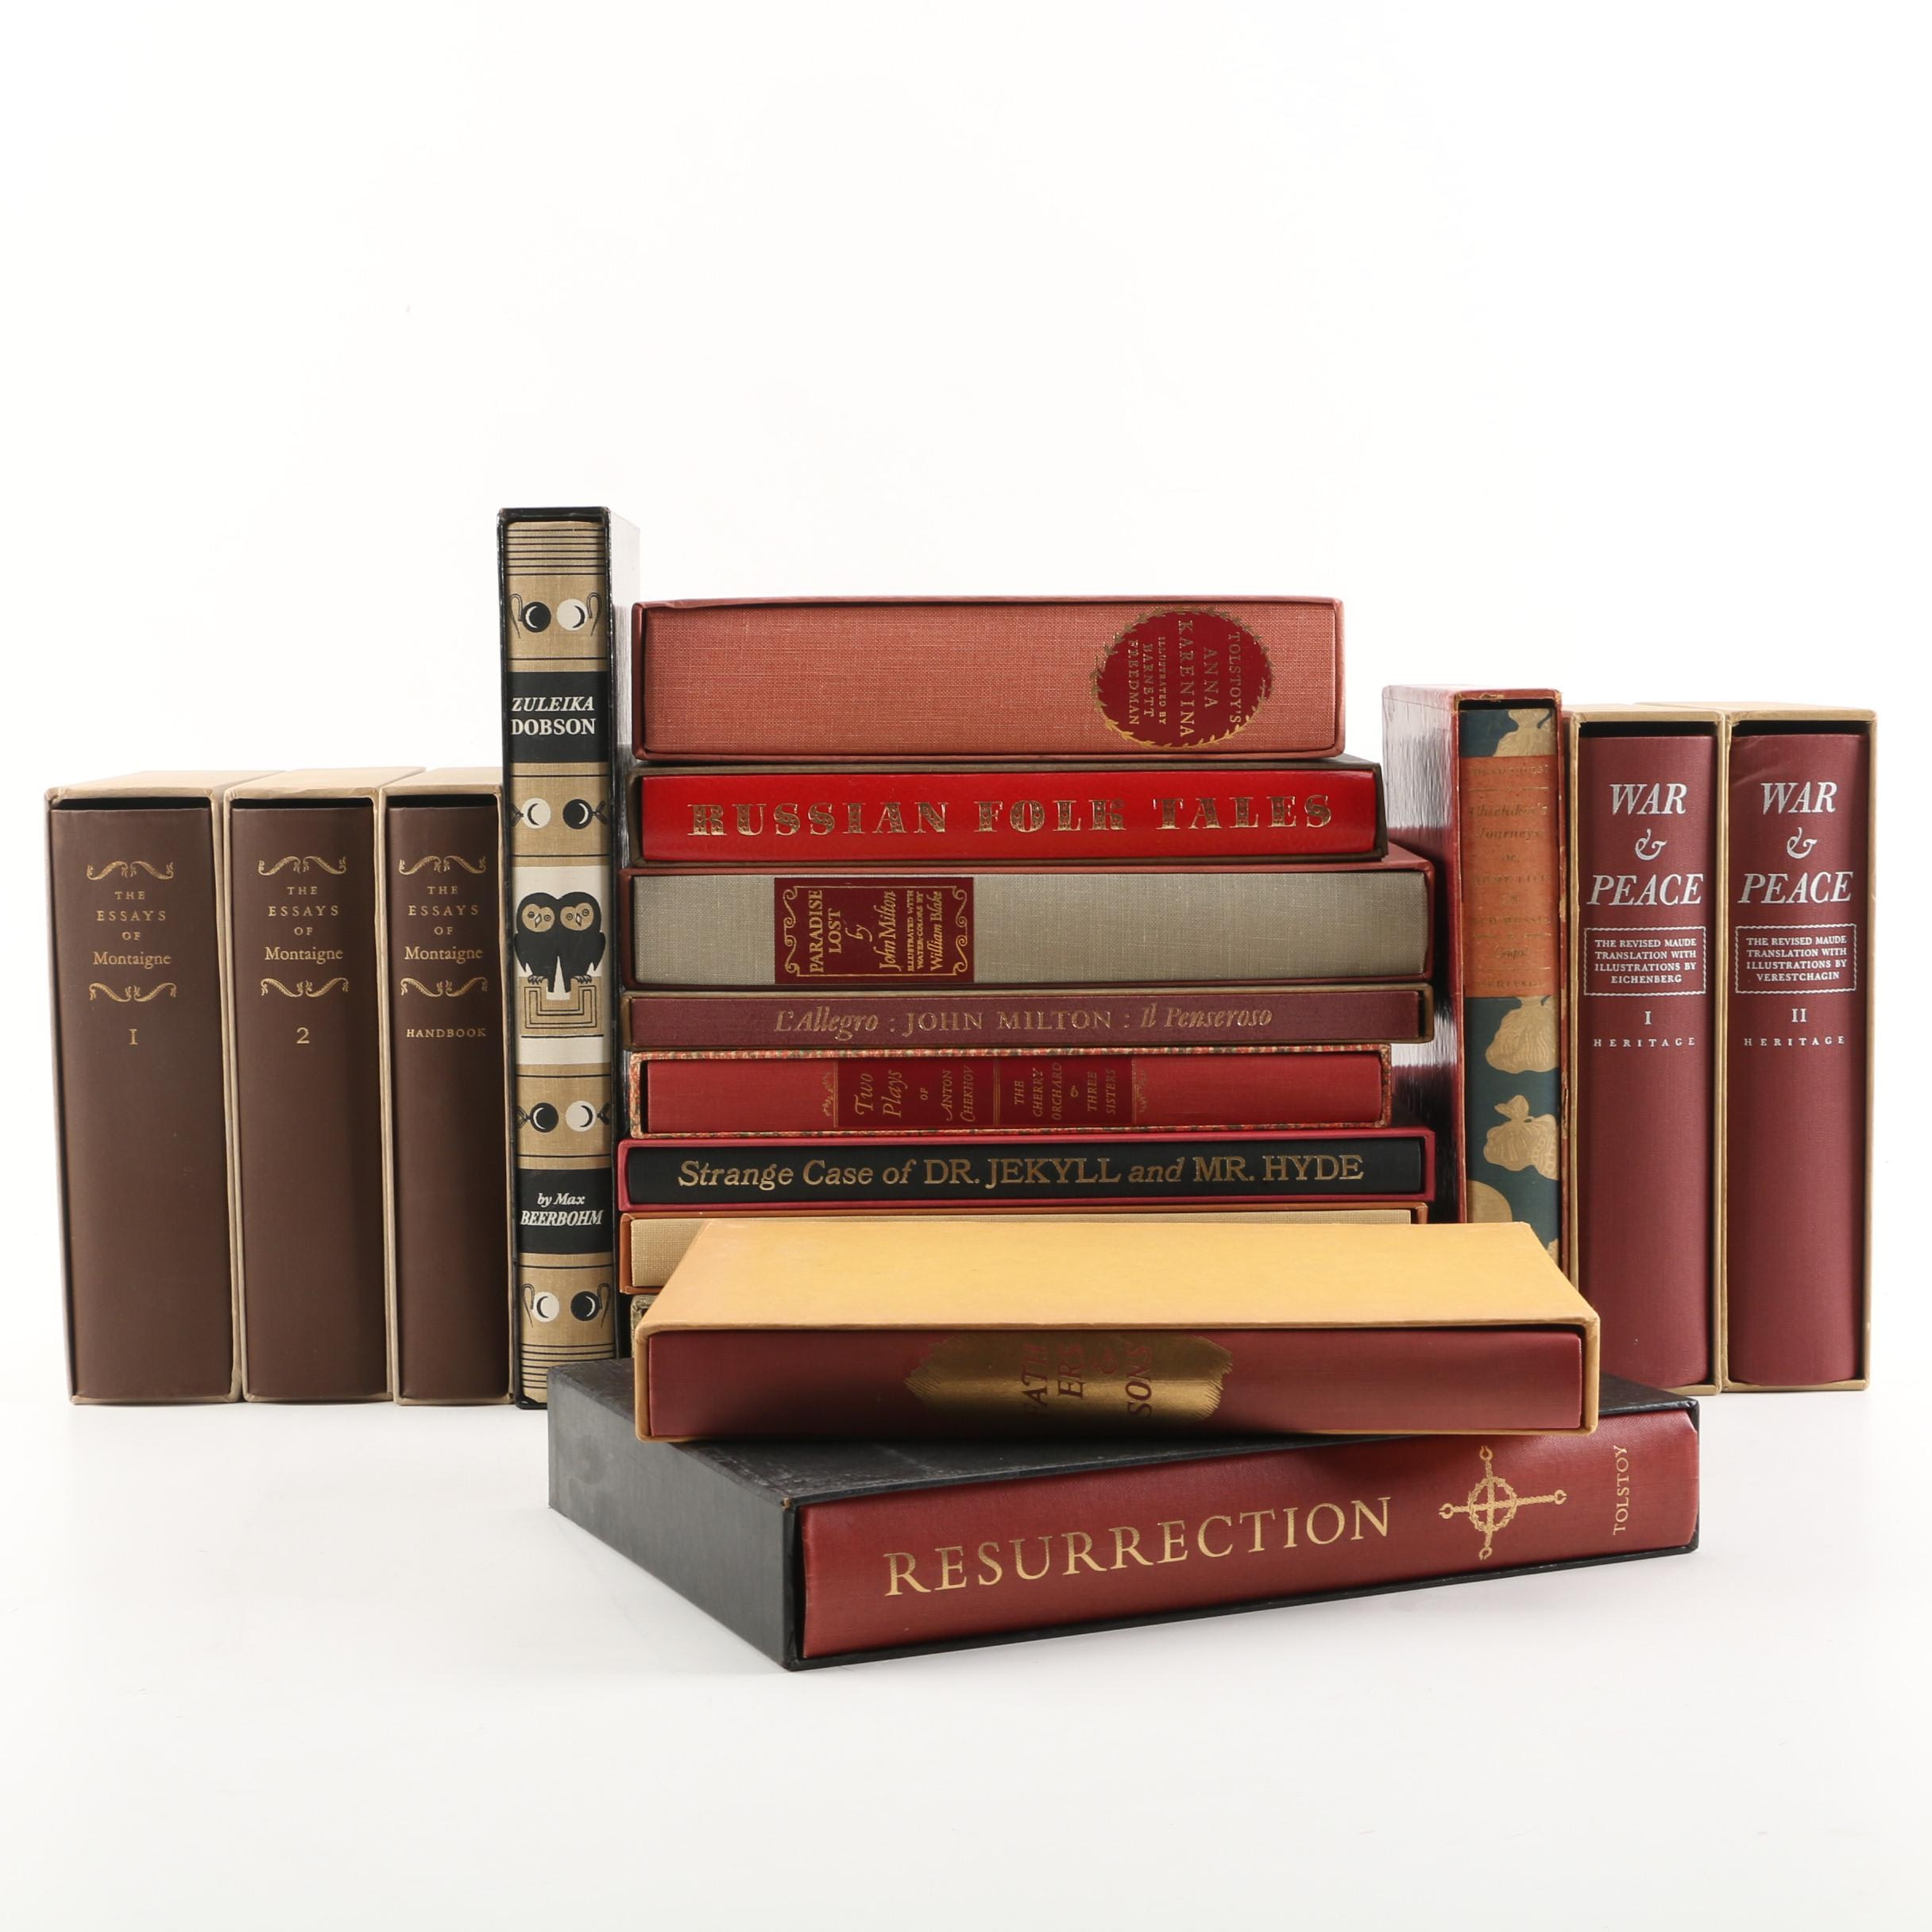 Heritage Press Editions of Classics featuring Leo Tolstoy and Montaigne